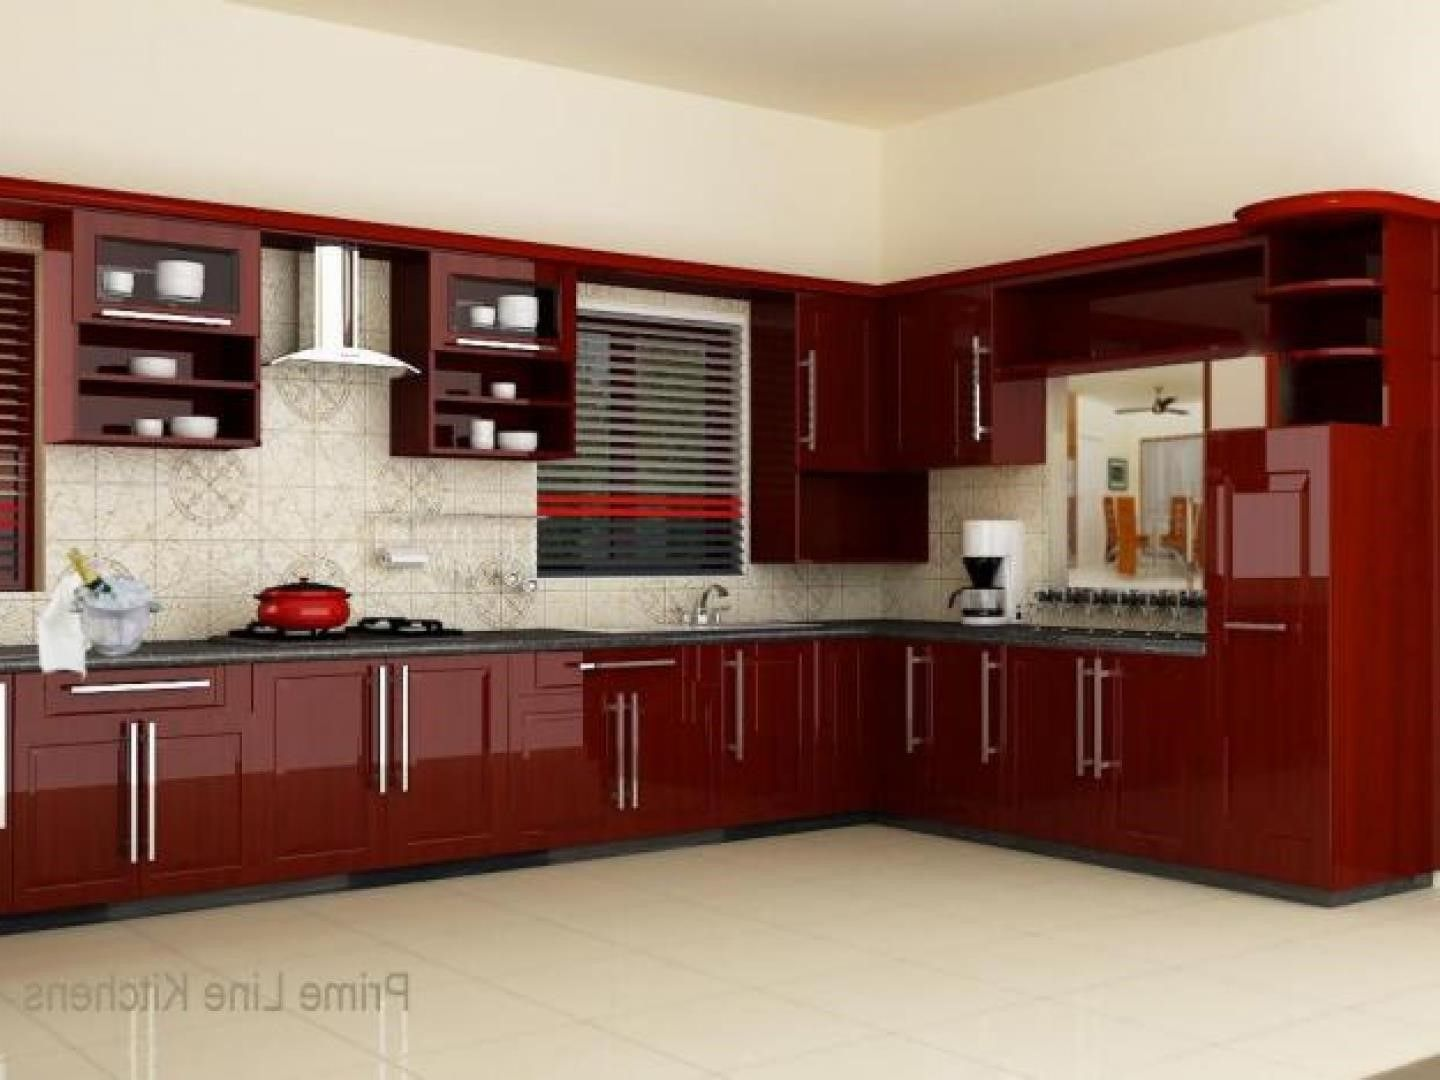 Good Ideas Simple Kitchen Design Timeless Style Kitchen Design Simple Kitchen Design Kitchen Cabinet Design